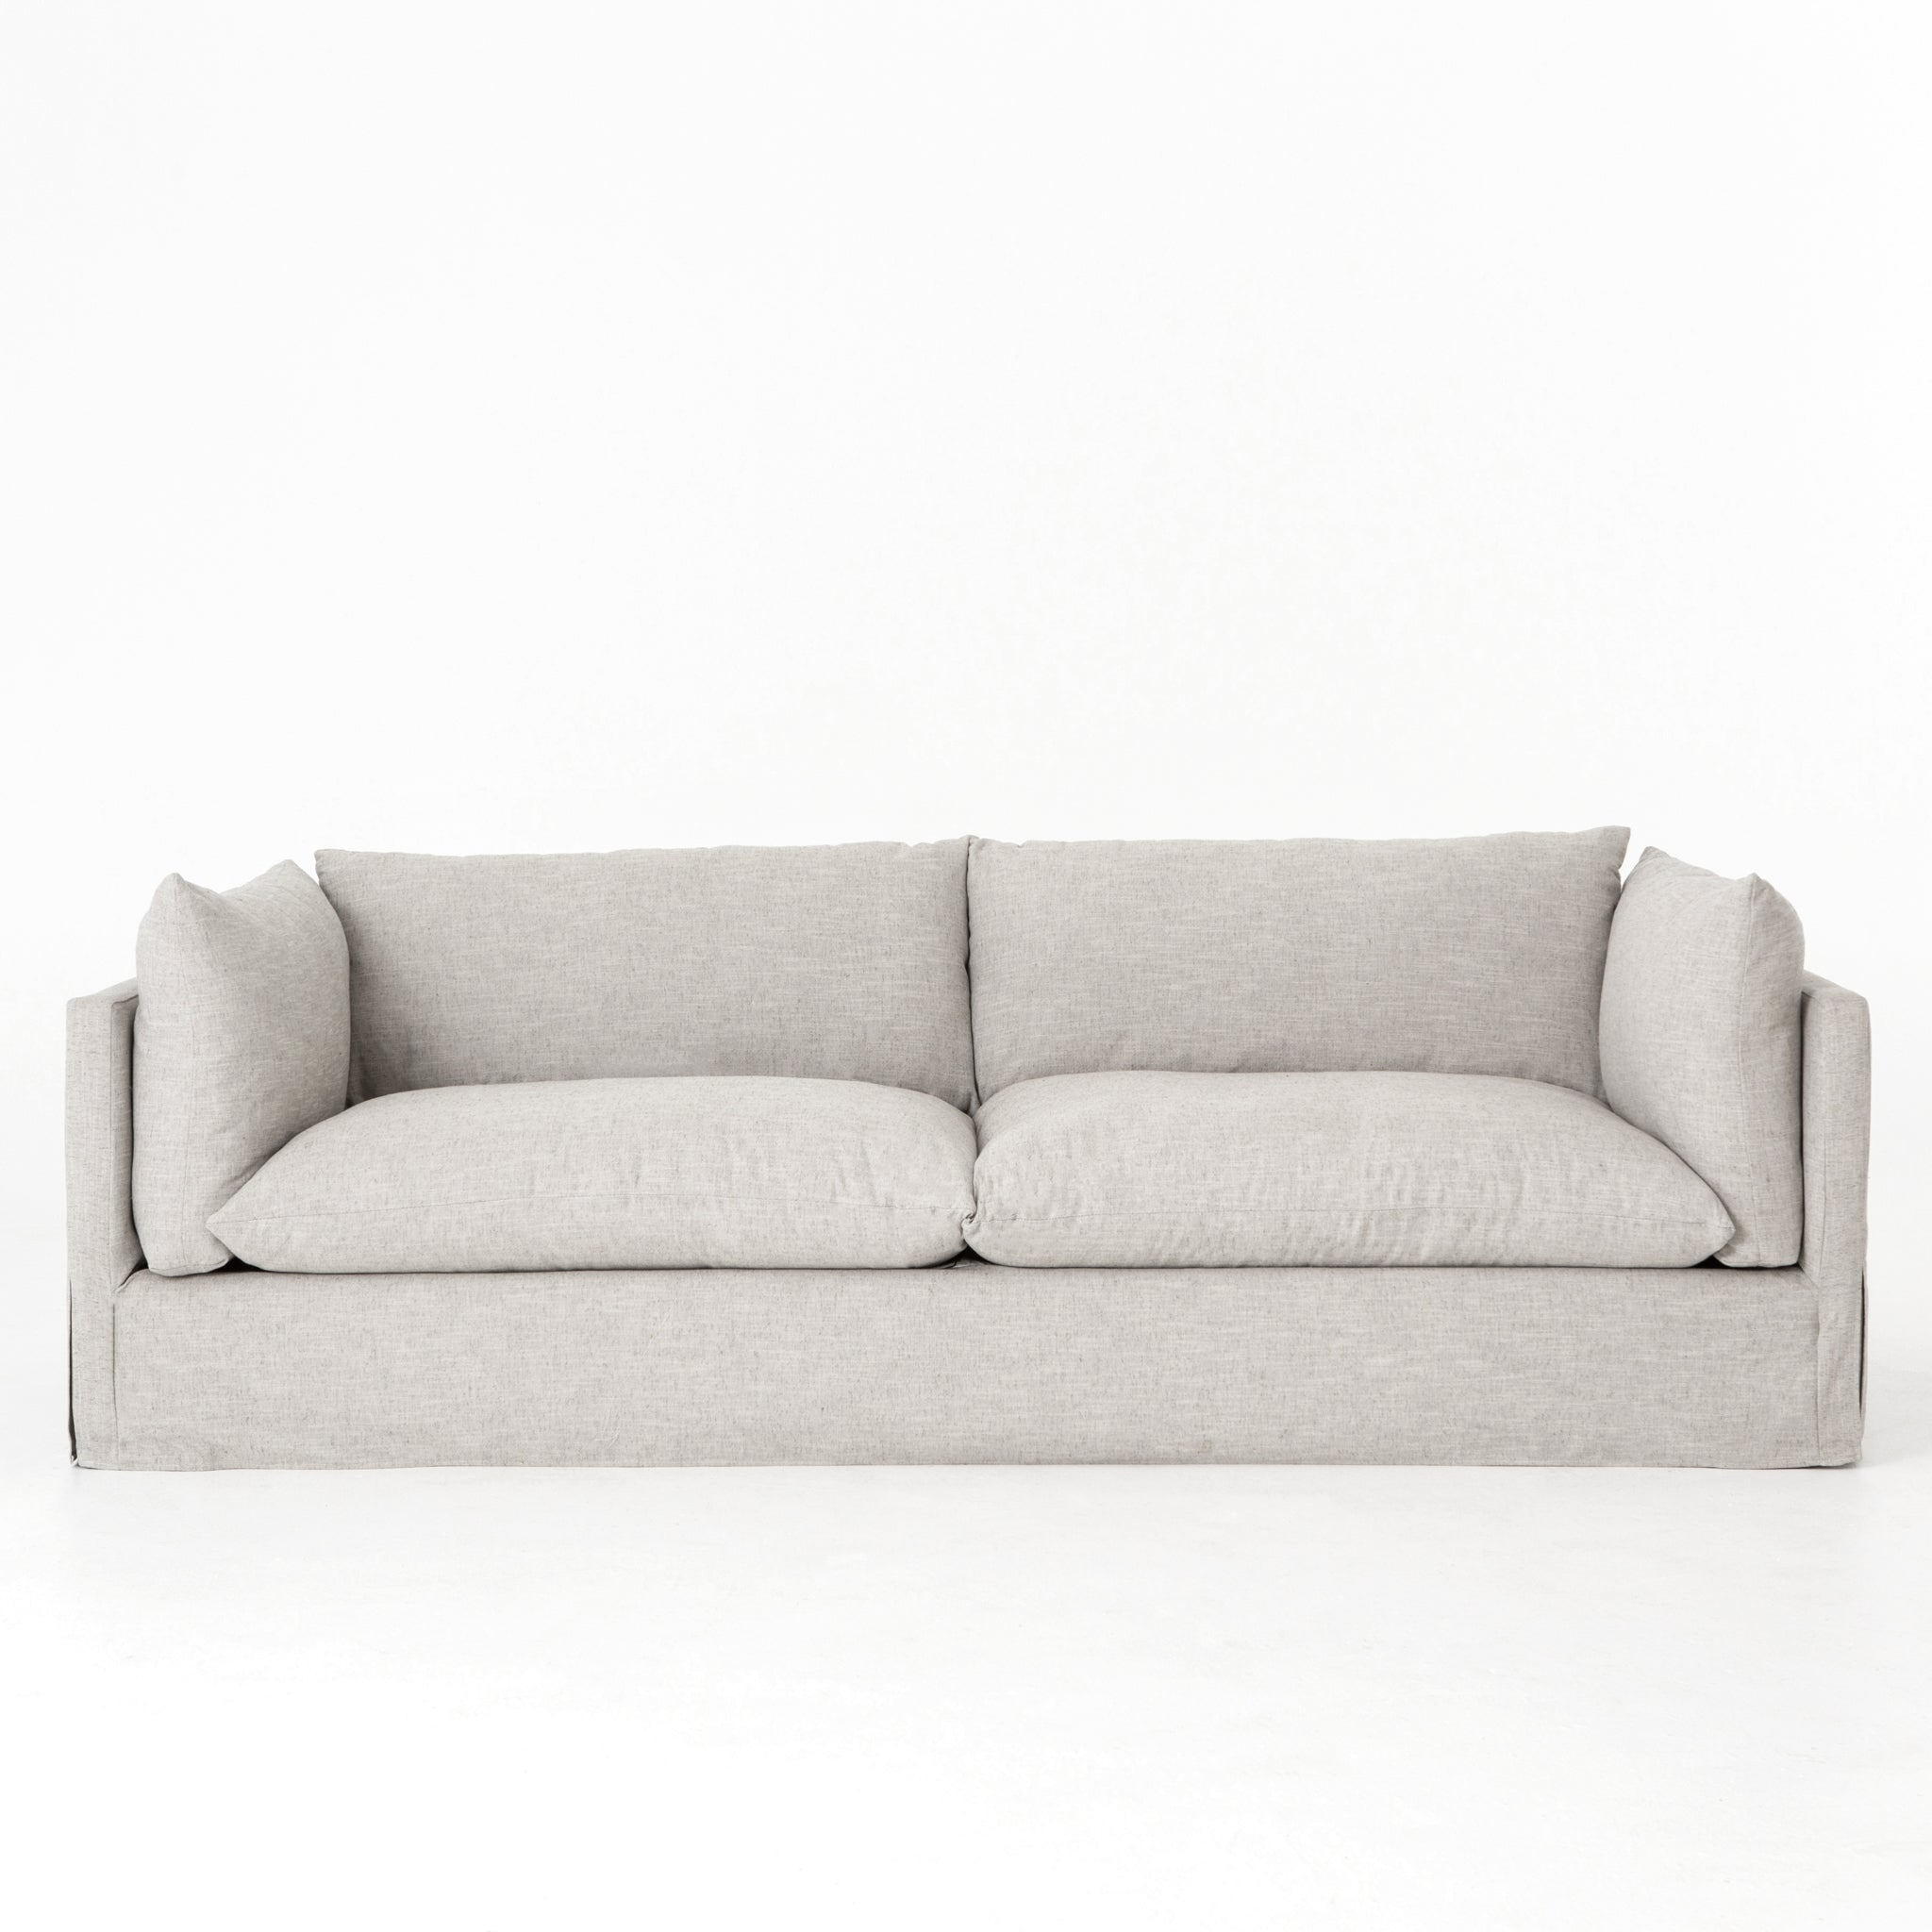 "Habitat Sofa-90""-Valley Nimbus"